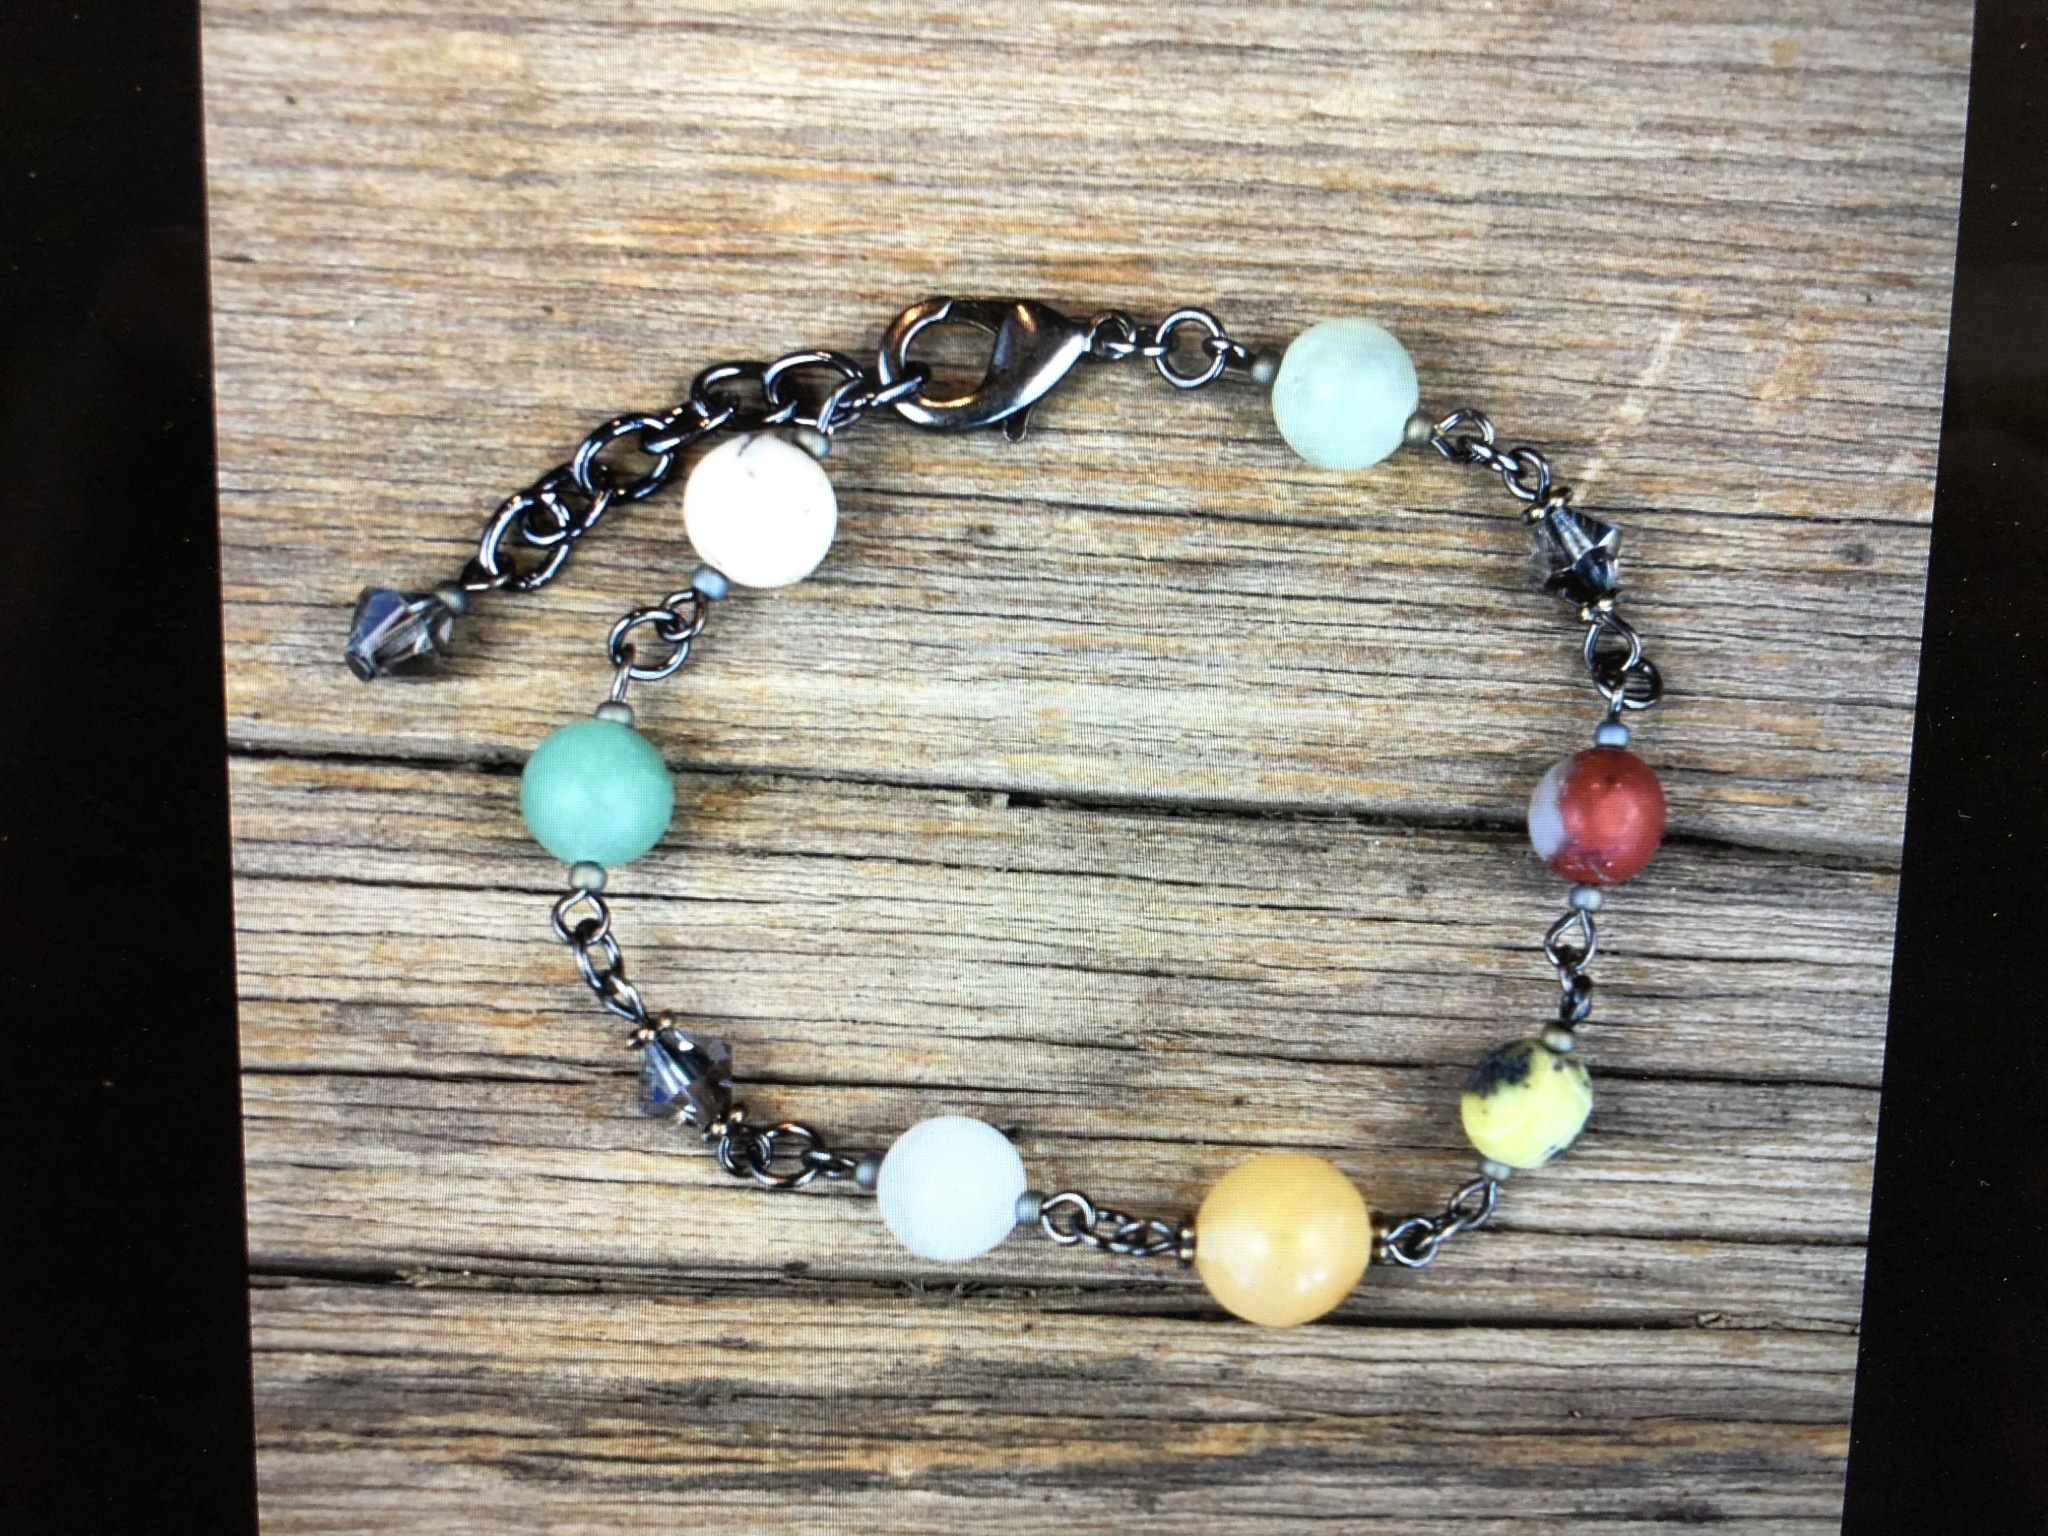 cool water jewelry BC104-184 Bracelet: Timberline-Matte Gemstones/Crystals